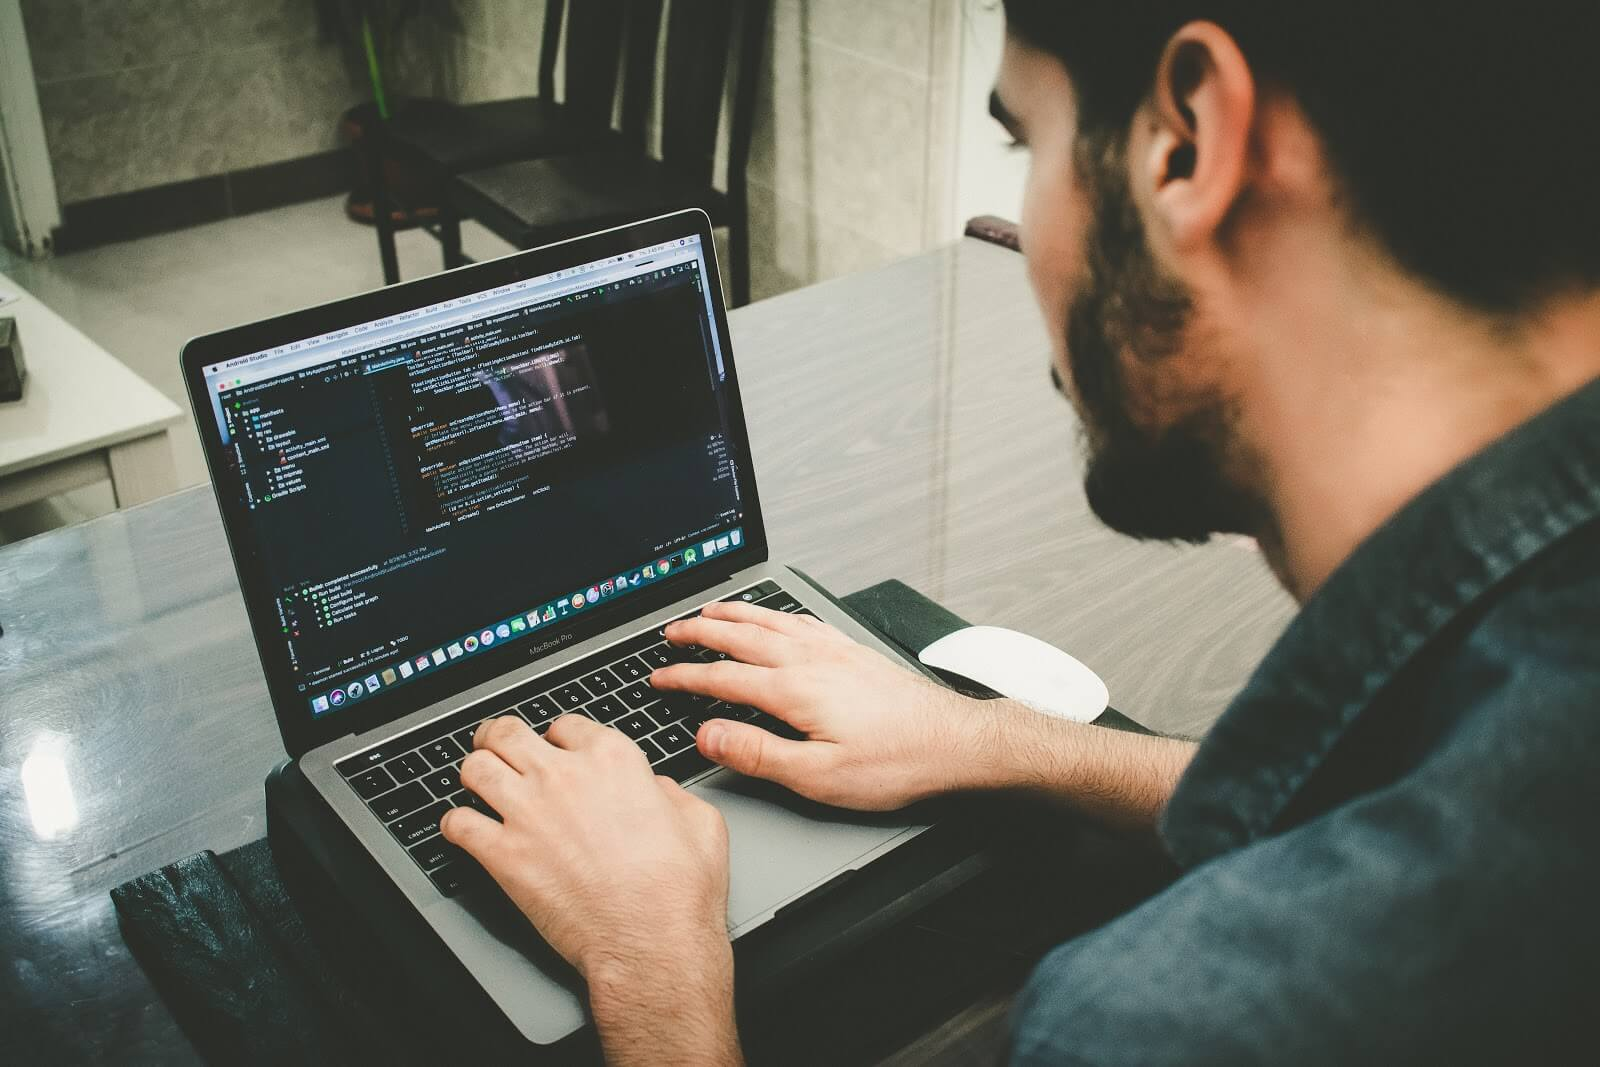 How to become a software developer: an over-the-shoulder view of a man coding